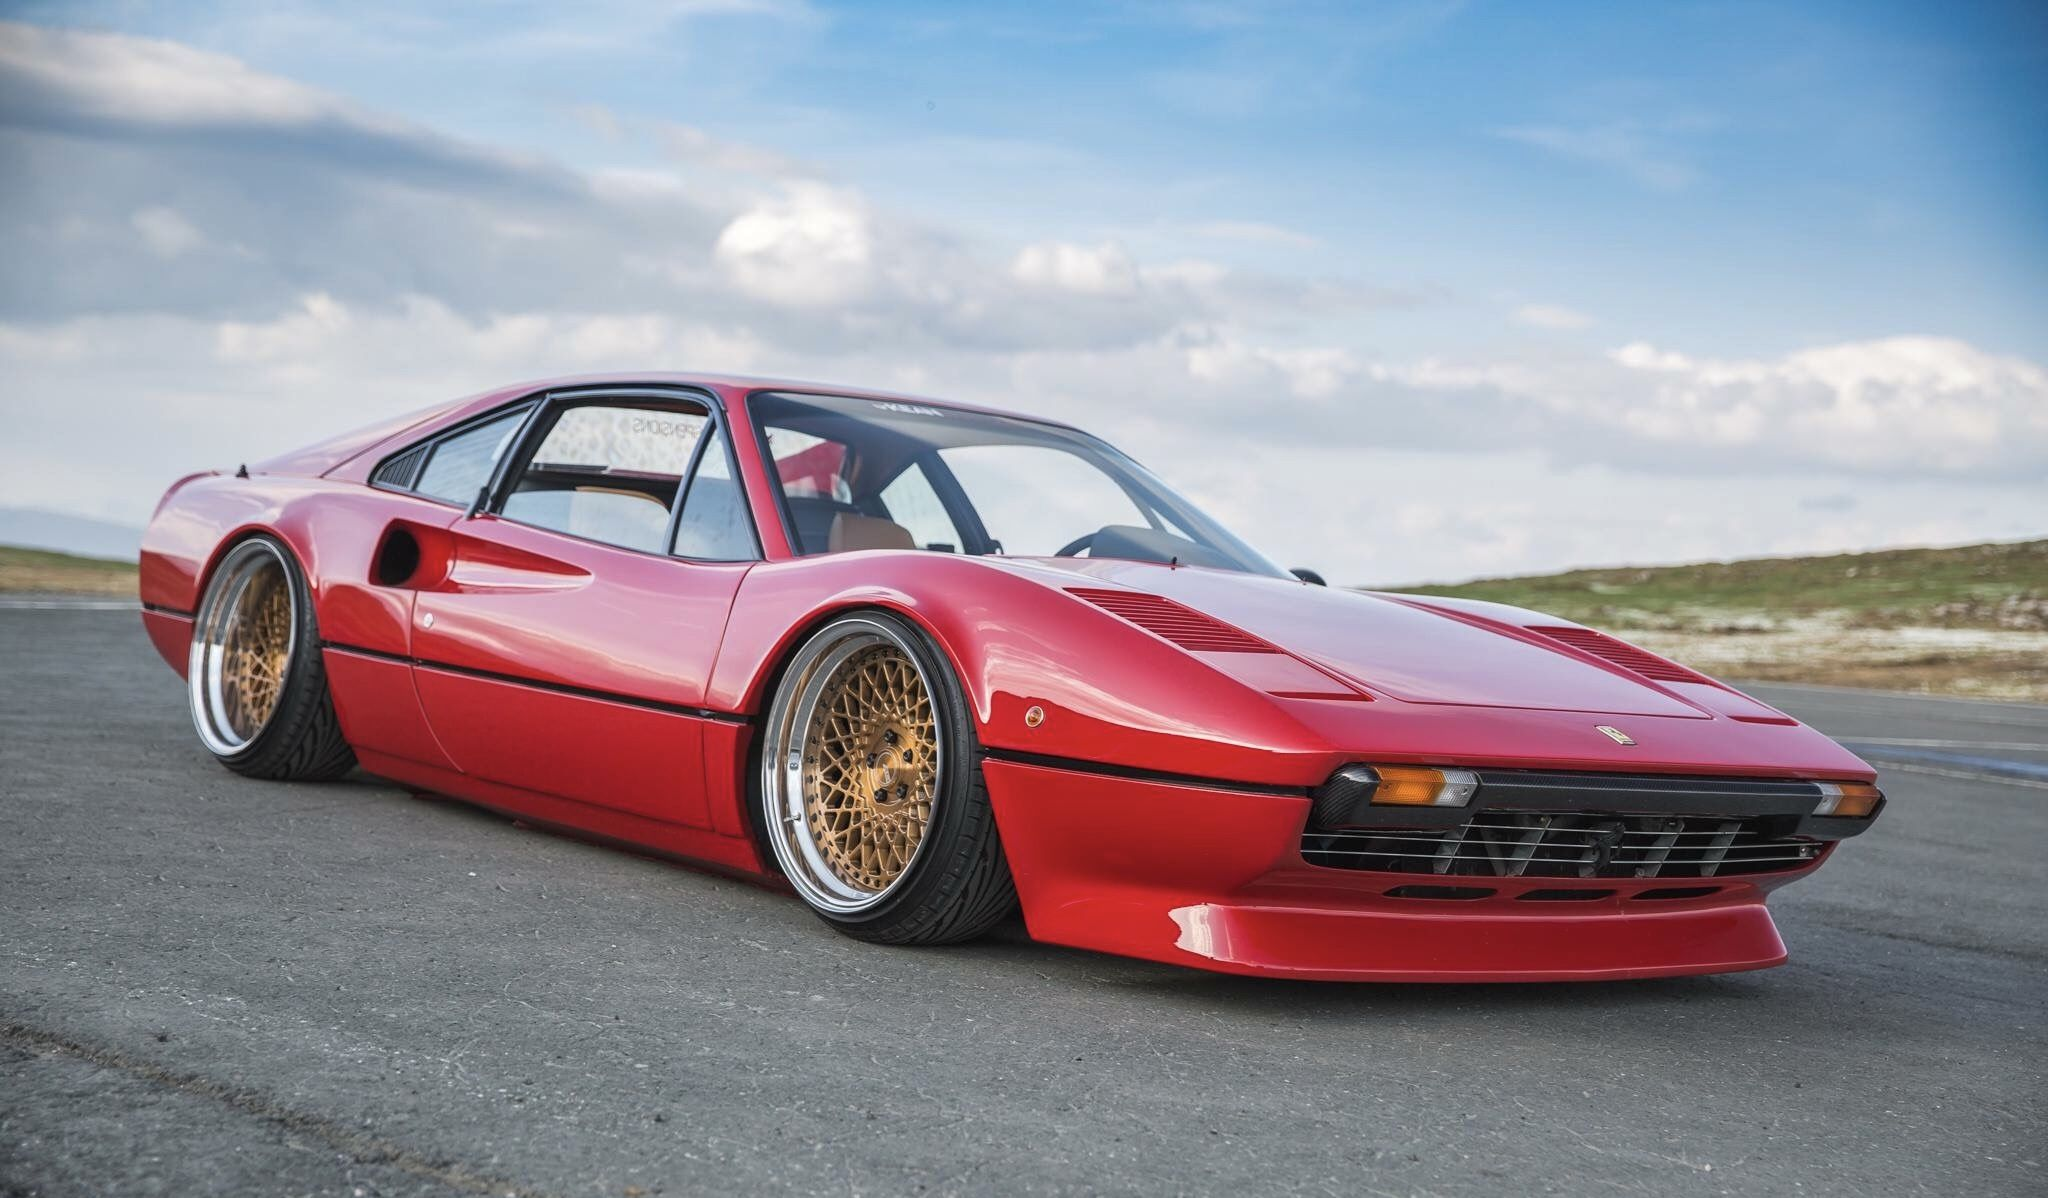 Pin By Jeff Snoddy On Youngtimers Of My Generations 70 S 80 S Early 90 S Super Cars Ferrari Car Ferrari 288 Gto